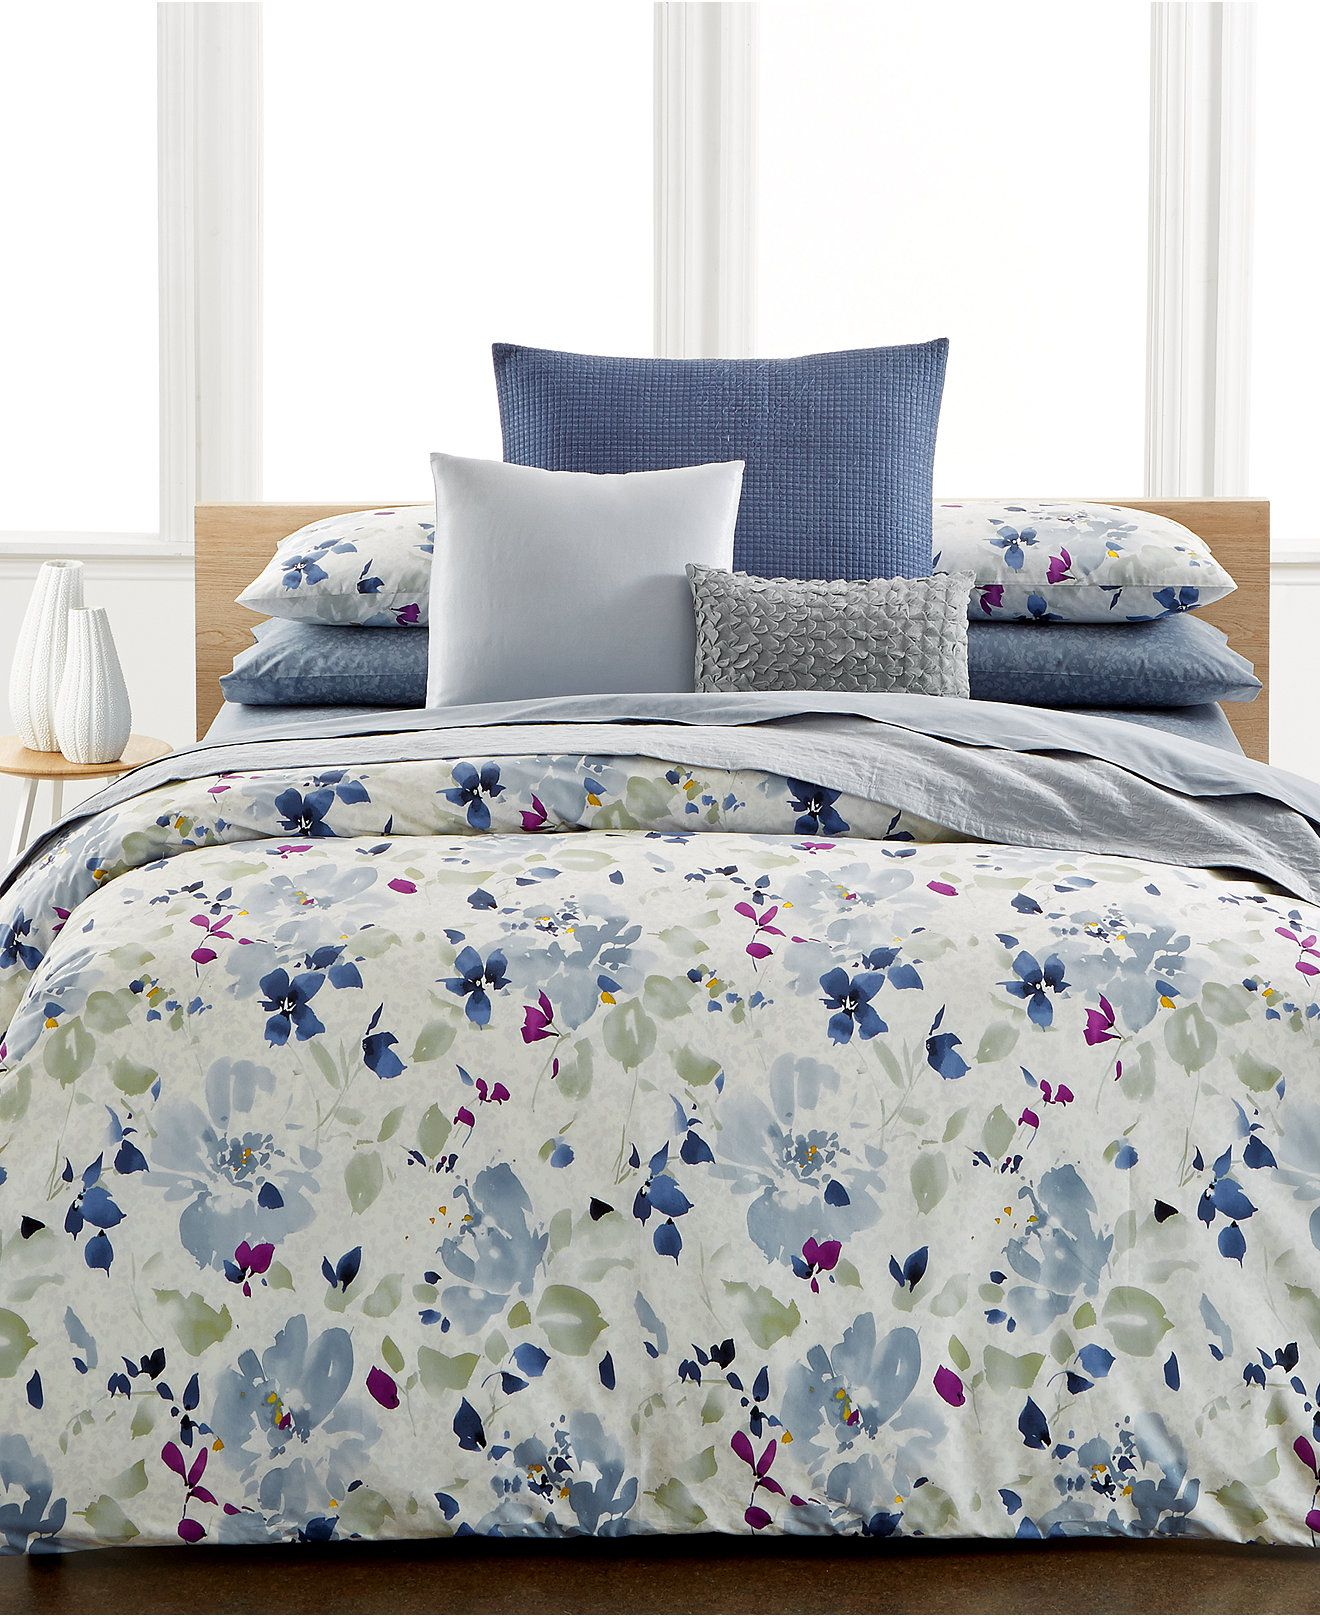 Bedding jardin collection bedding collections bed amp bath macy s - Calvin Klein Watercolor Peonies Duvet Covers Duvet Covers Bed Bath Macy S Comforters